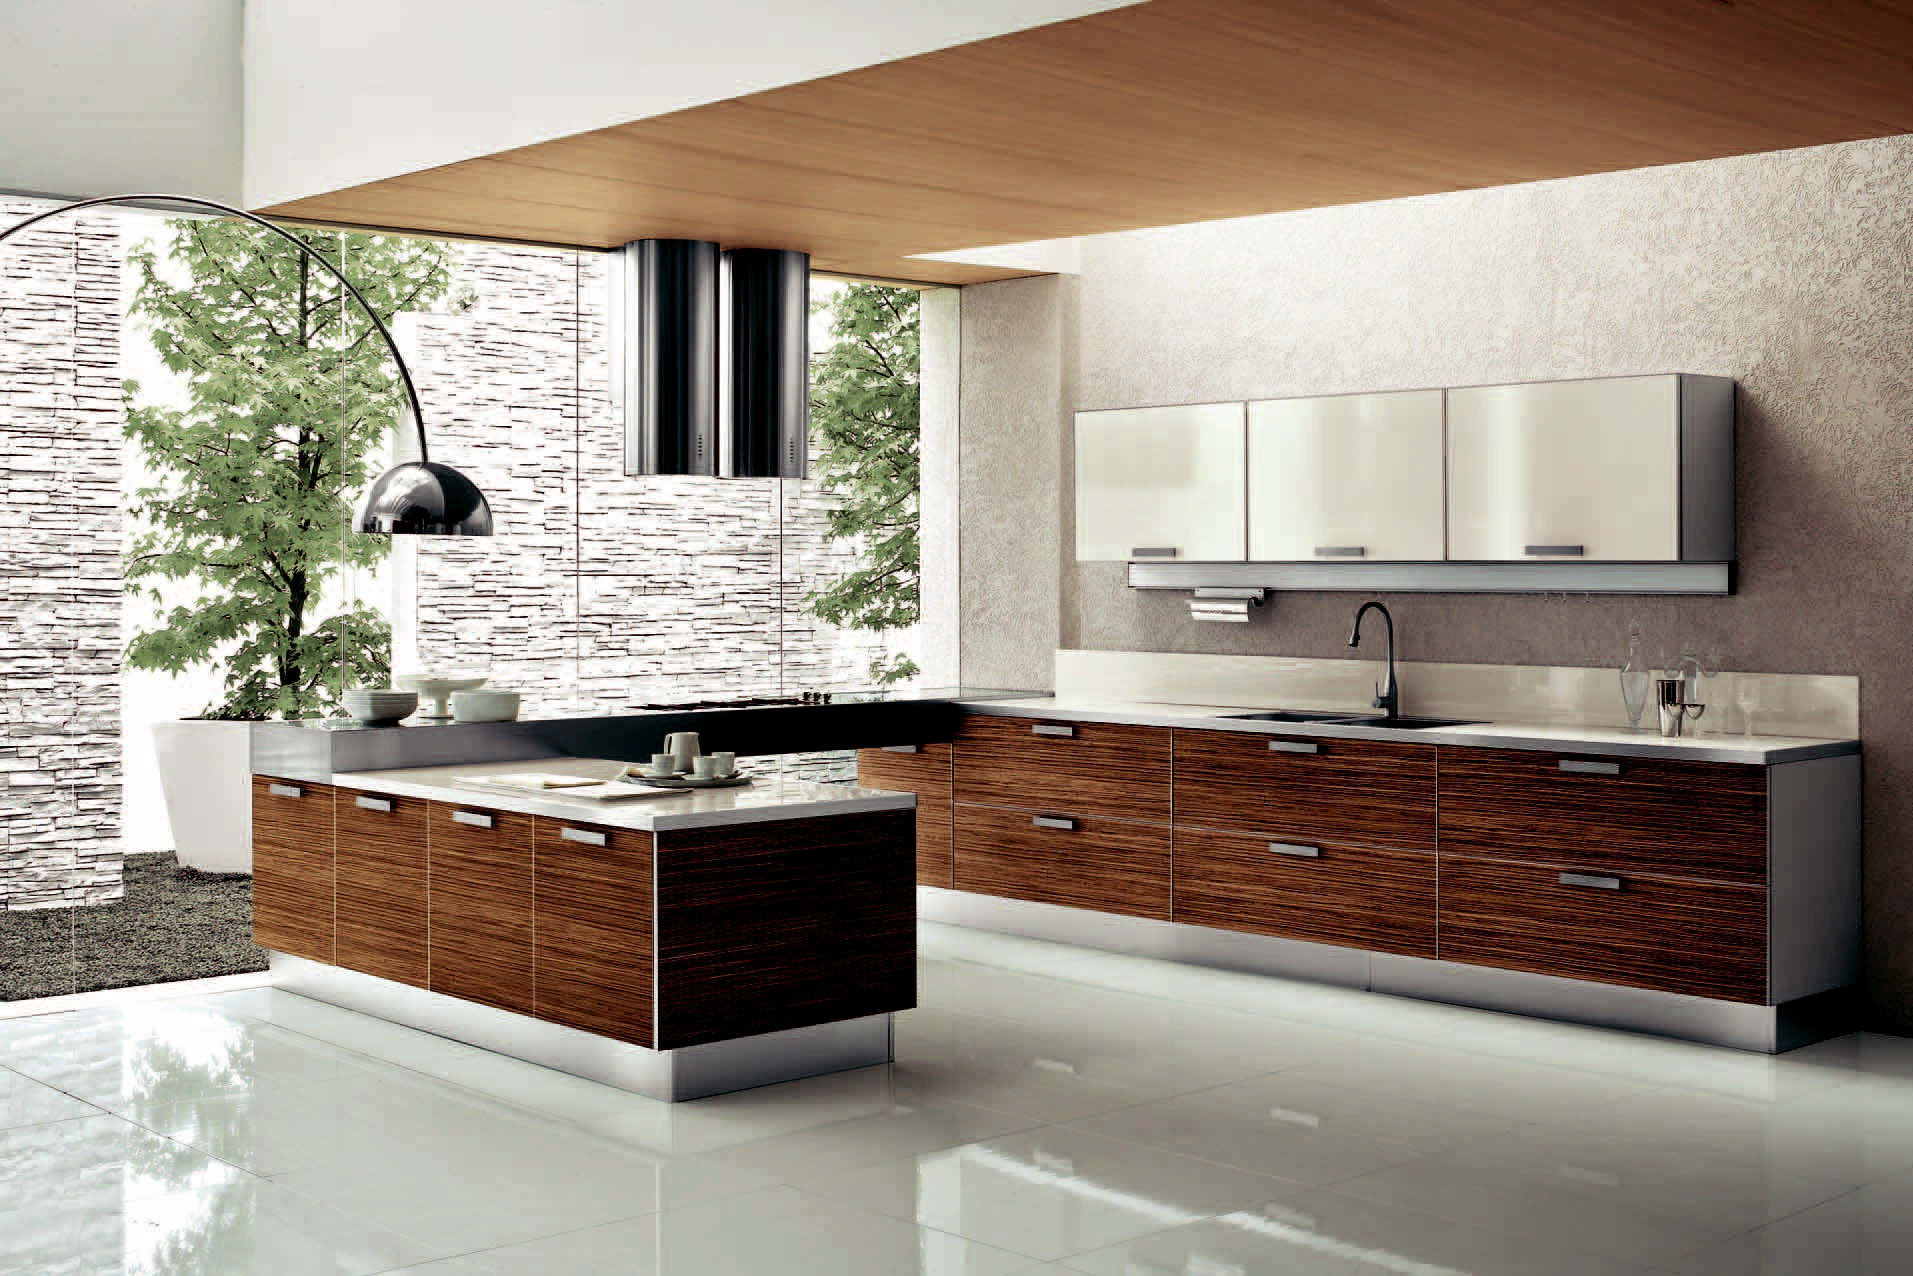 Beyond kitchens kitchen cupboards cape town kitchens for Modern kitchen images